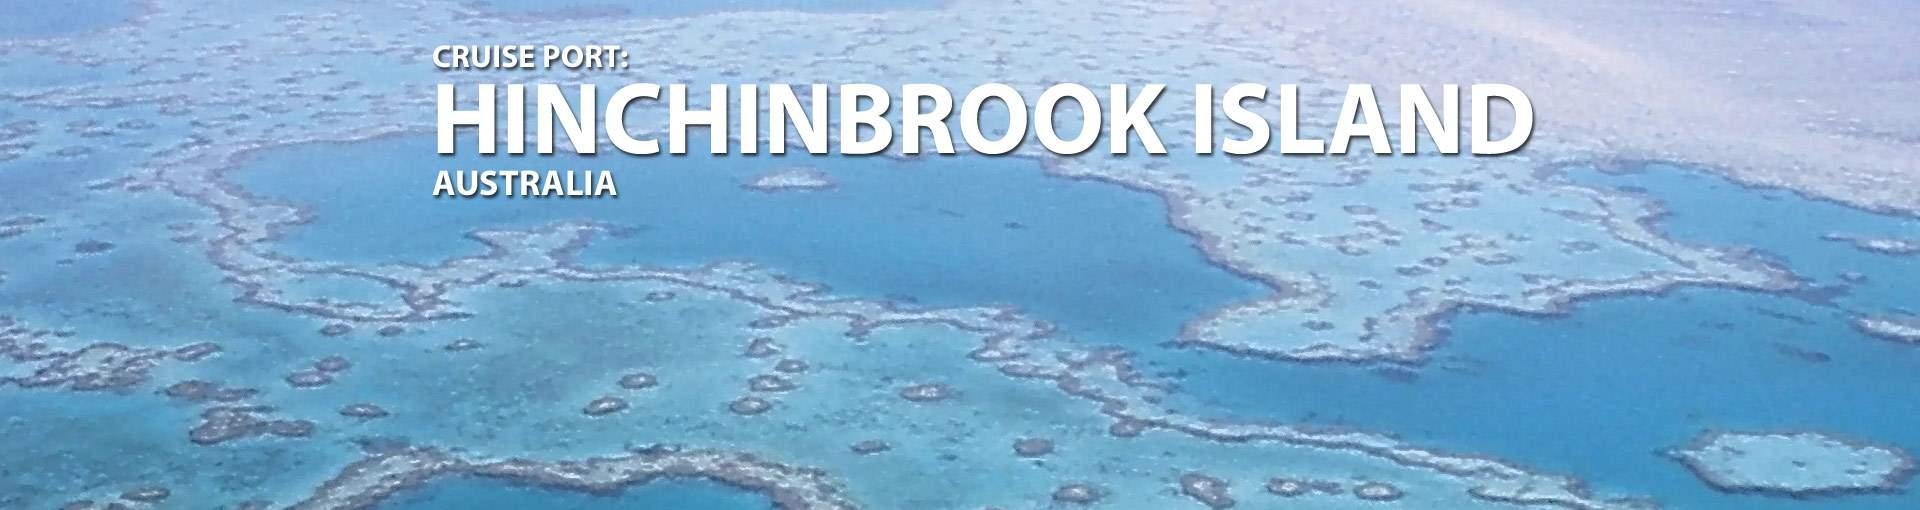 Hinchinbrook Island, Australia Cruise Port